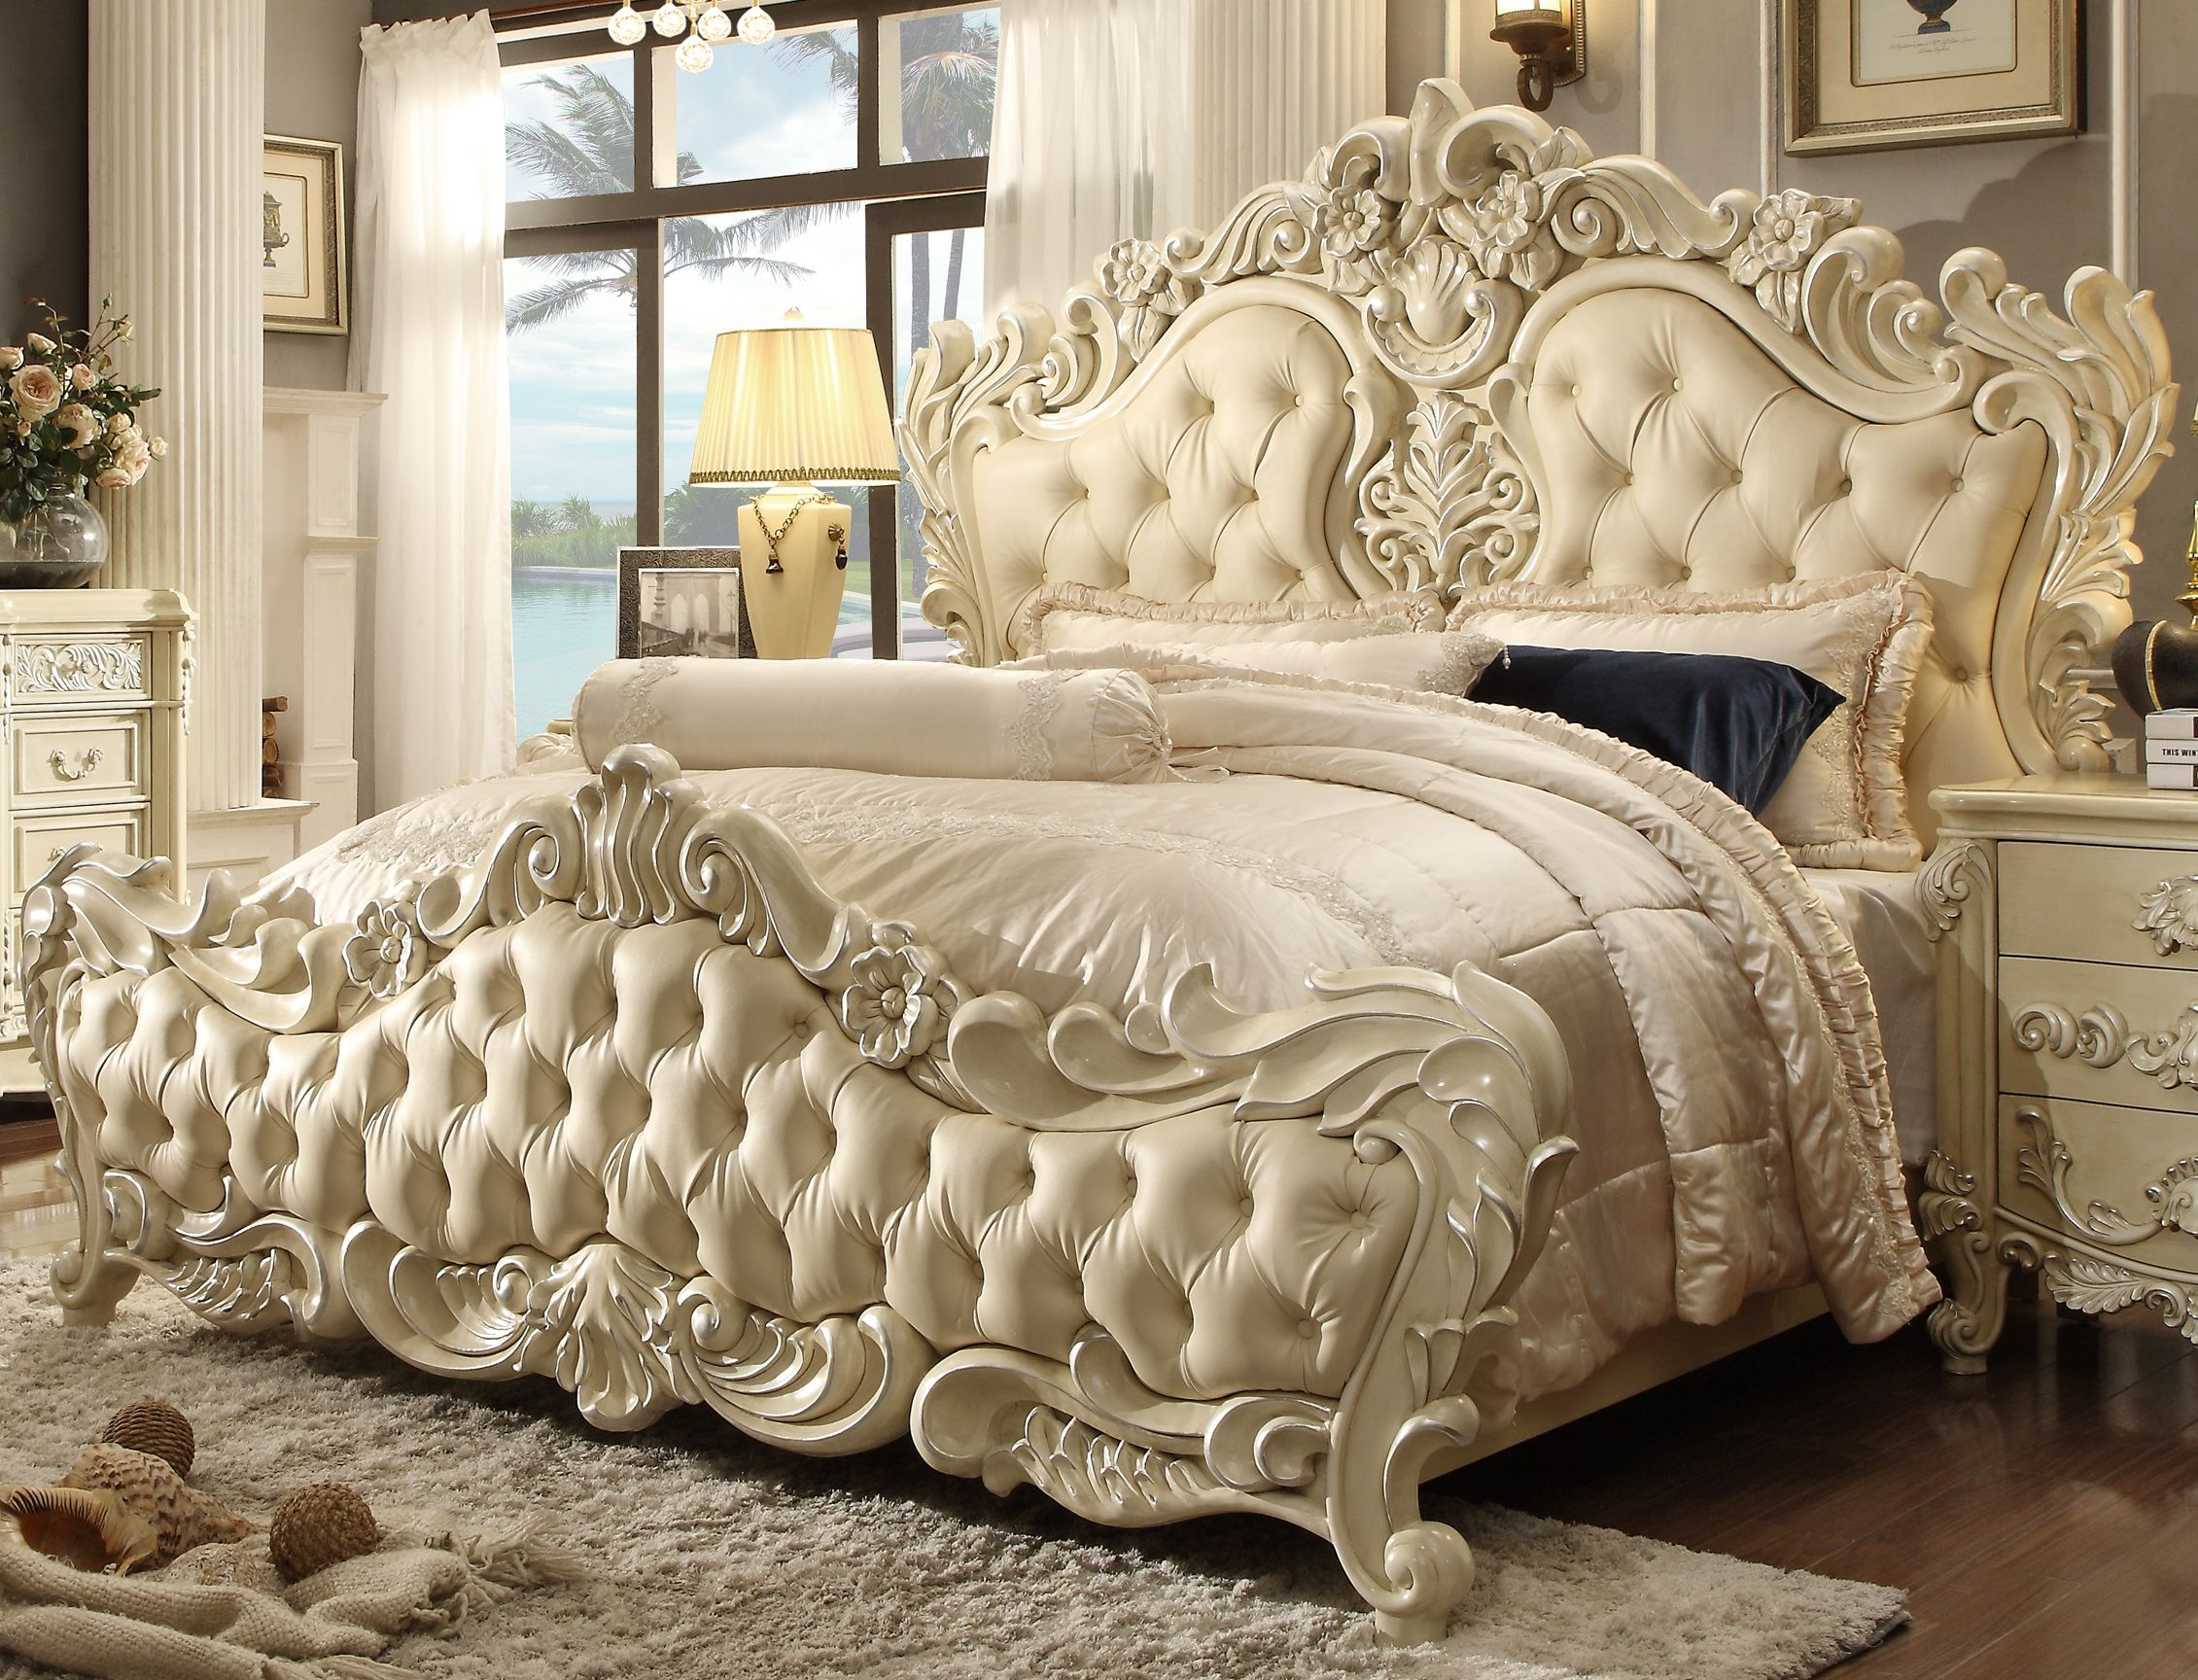 Hd 5800 Homey Design Imperial Palace Bed With Images King